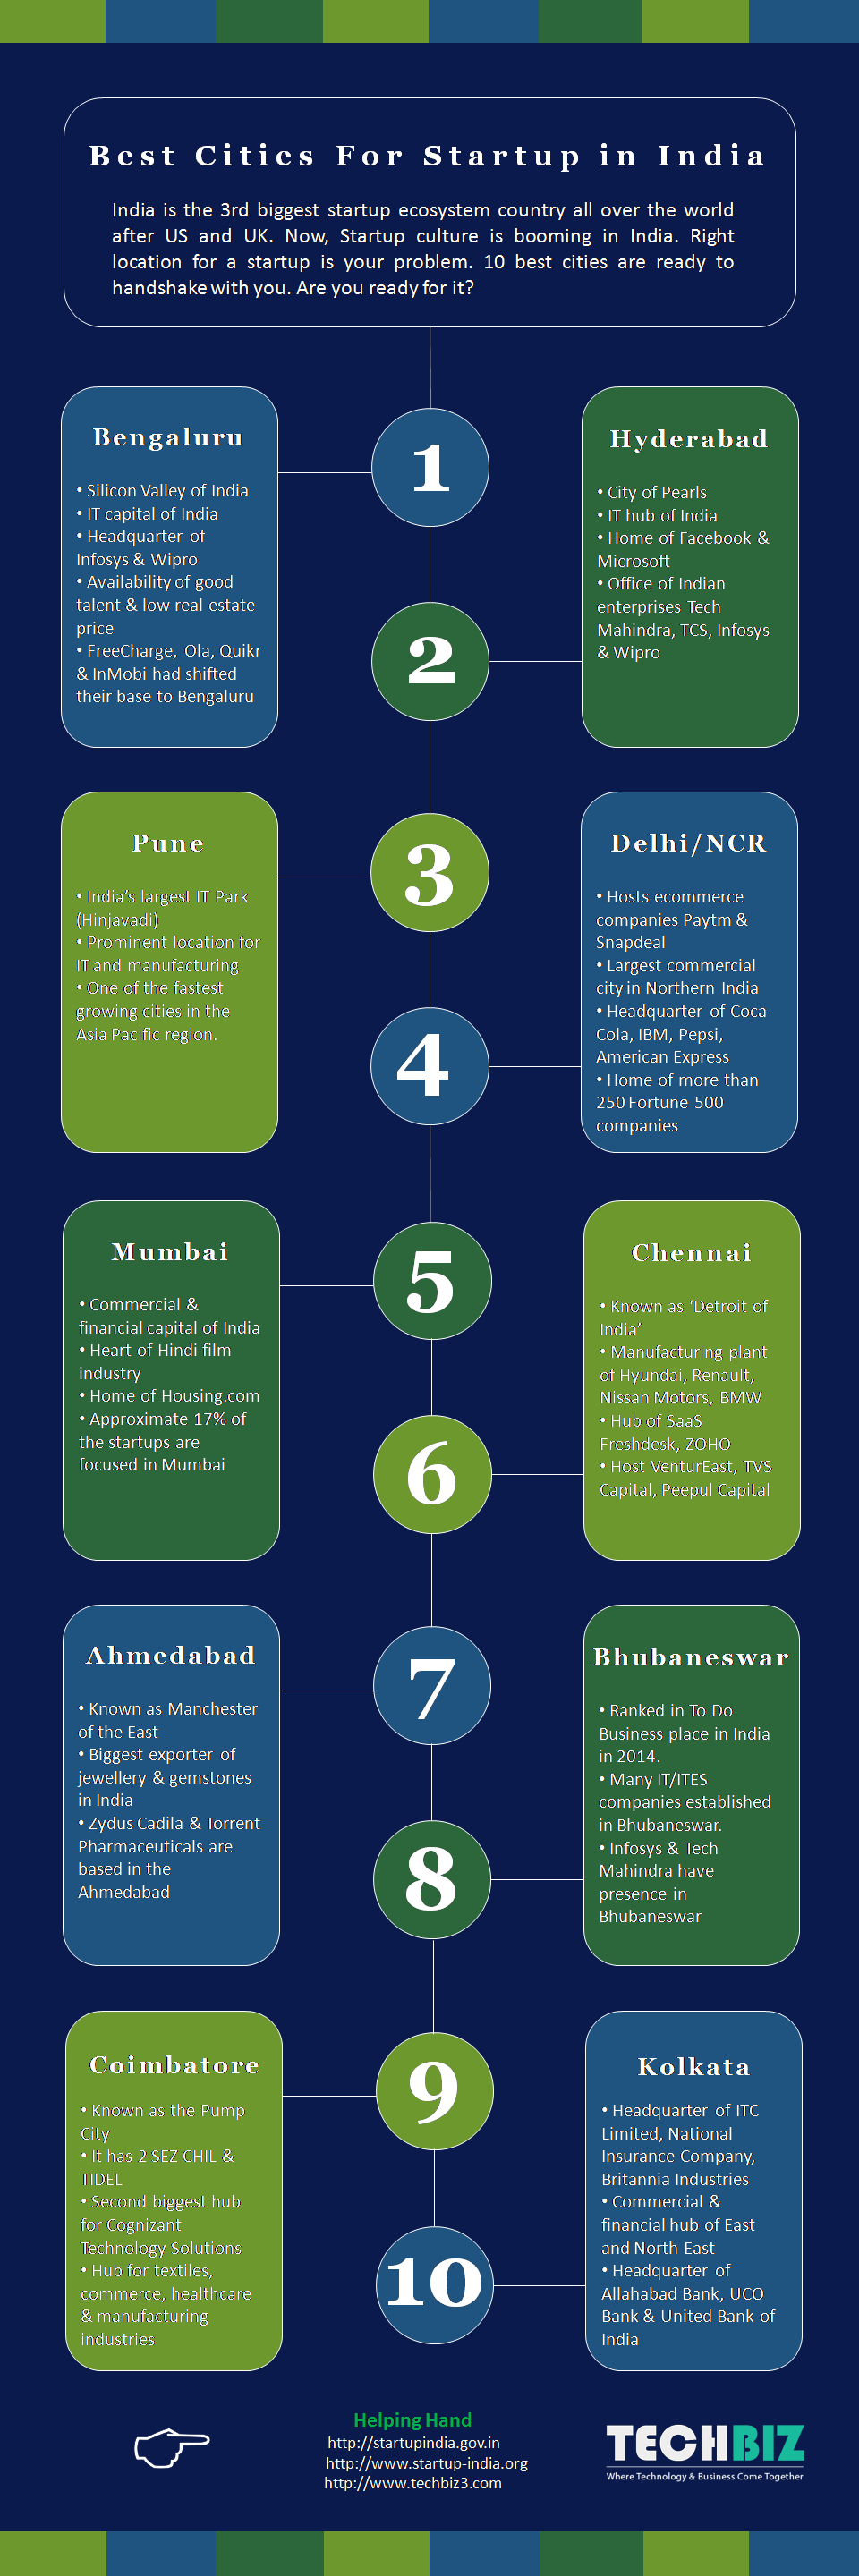 Best Cities For startups in India infographic 1